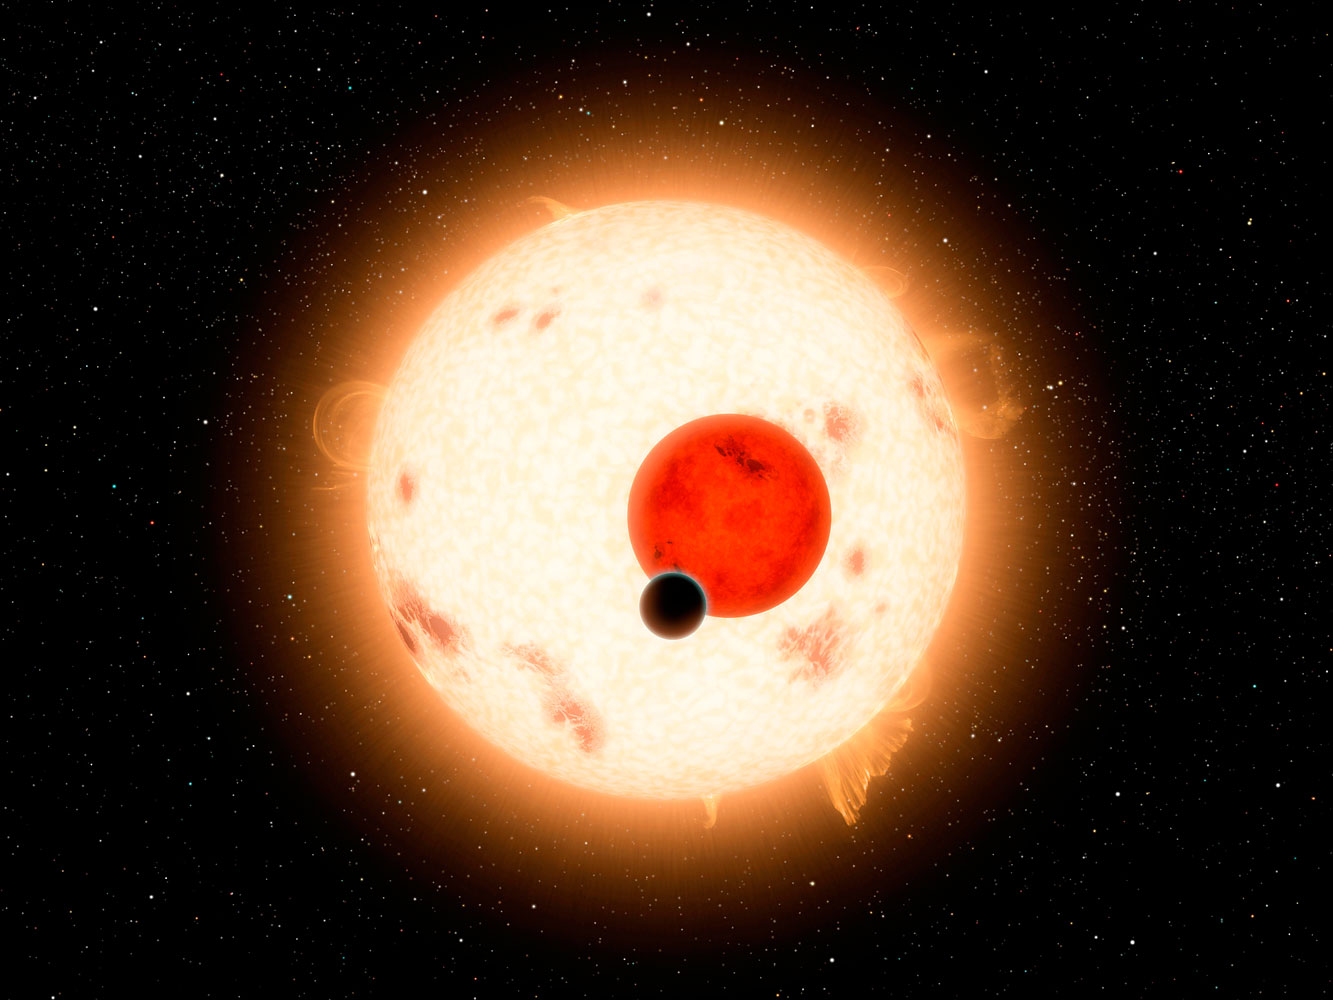 Kepler 16b, one of the many planets discovered by the Kepler space telescope, is one of the few with two suns